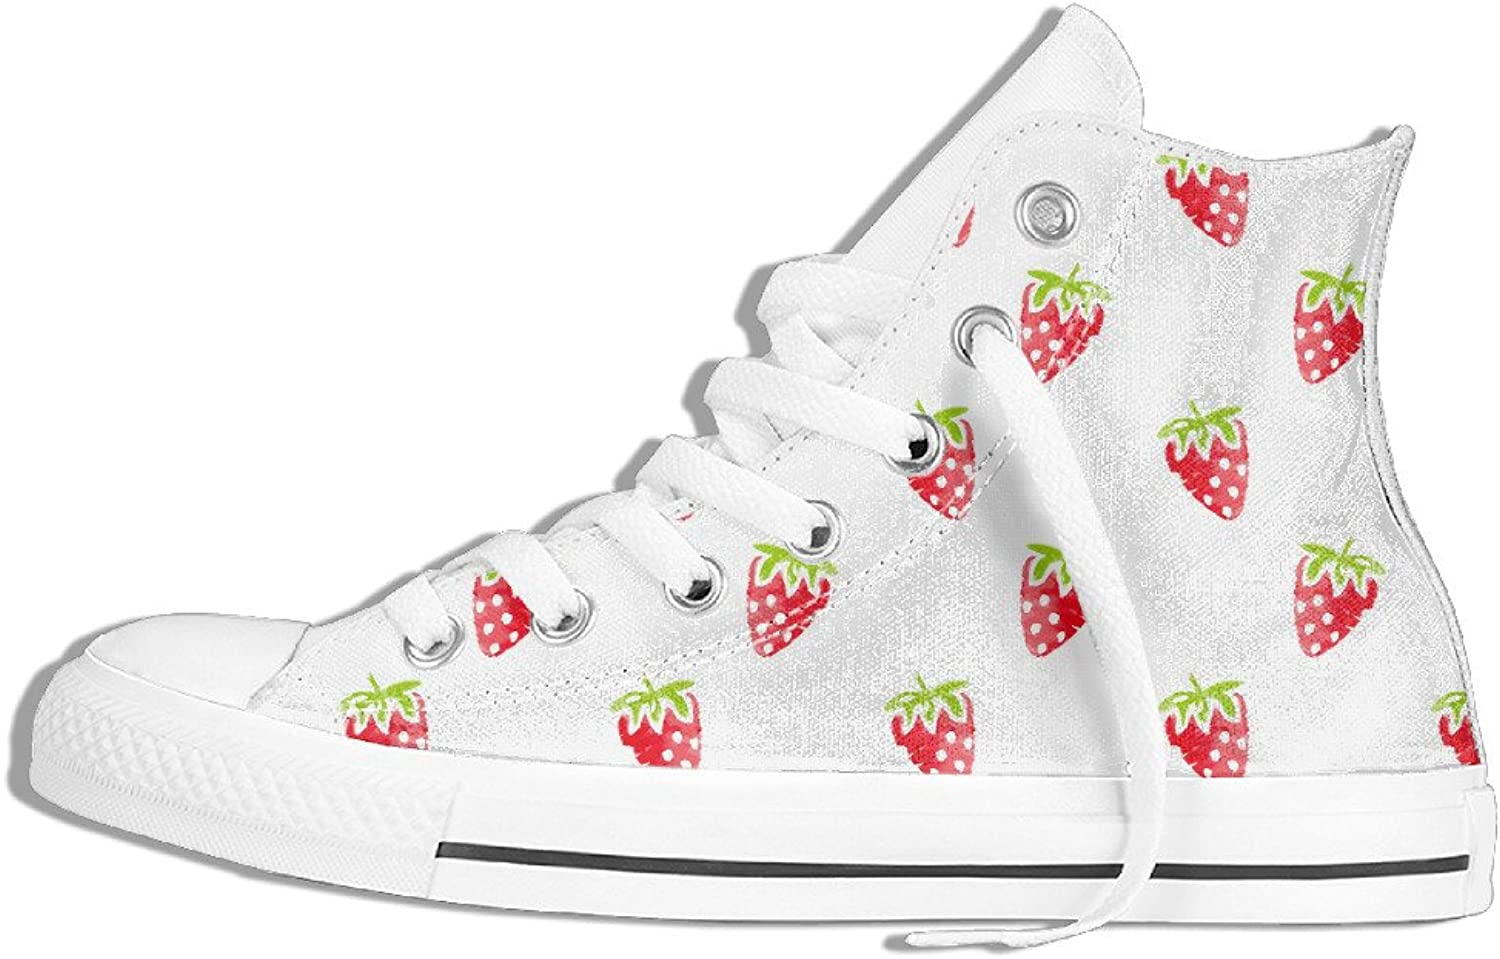 Efbj Strawberry Pattern Unisex Comfortable High Top Canvas Sneaker for Men and Women